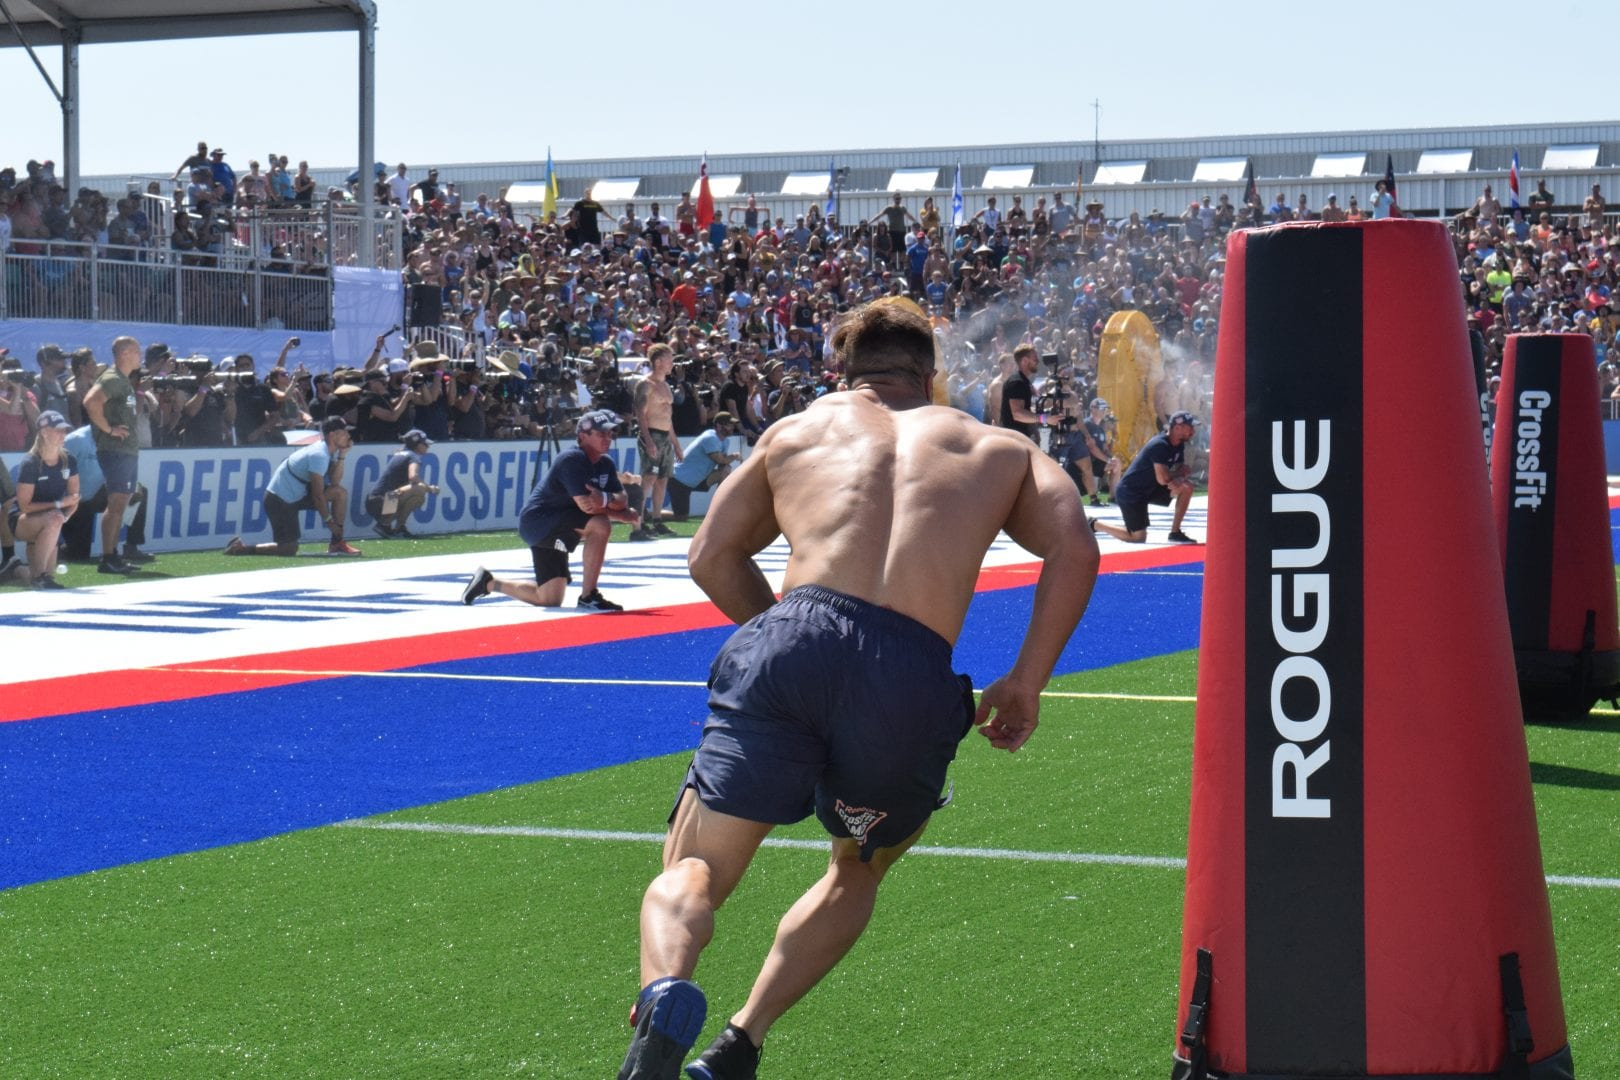 Adrian Mundwiler completes the Sprint event at the 2019 CrossFit Games.